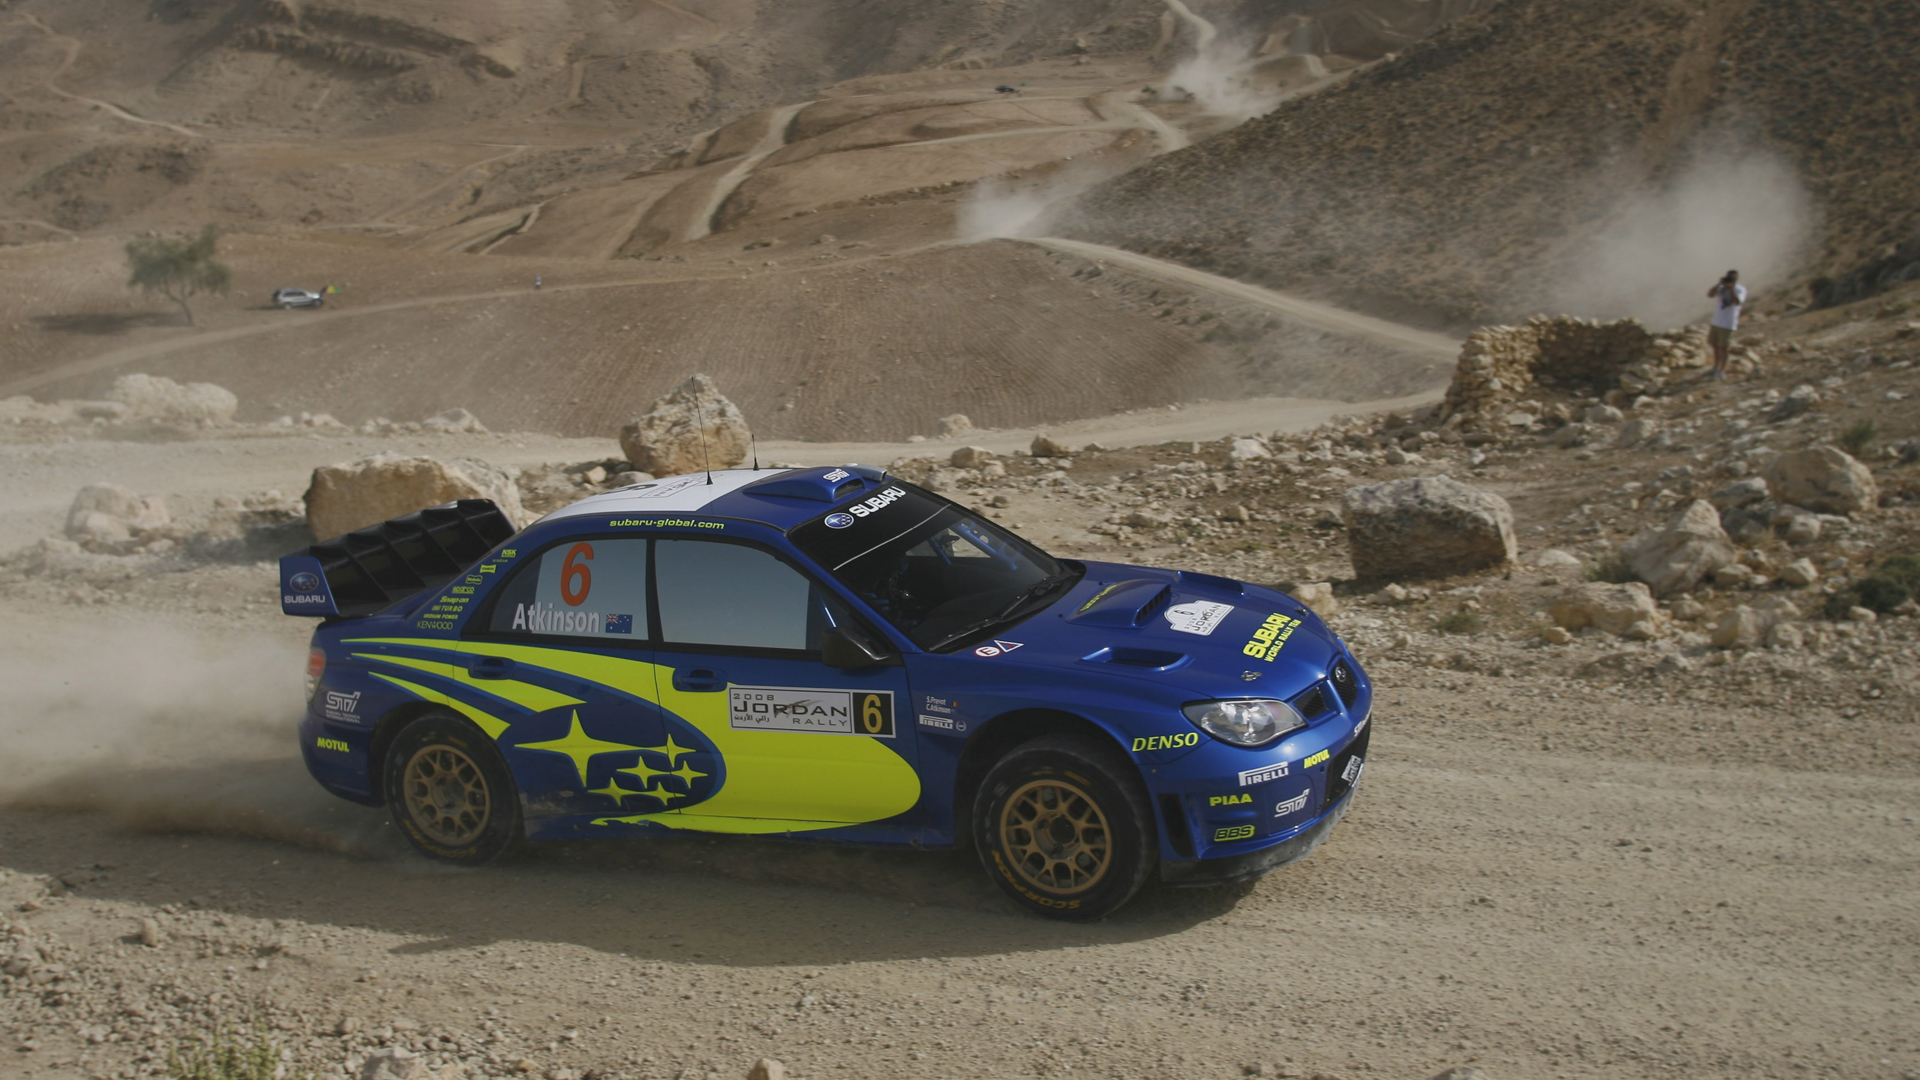 2017 Subaru Impreza WRC Prototype photo - 4